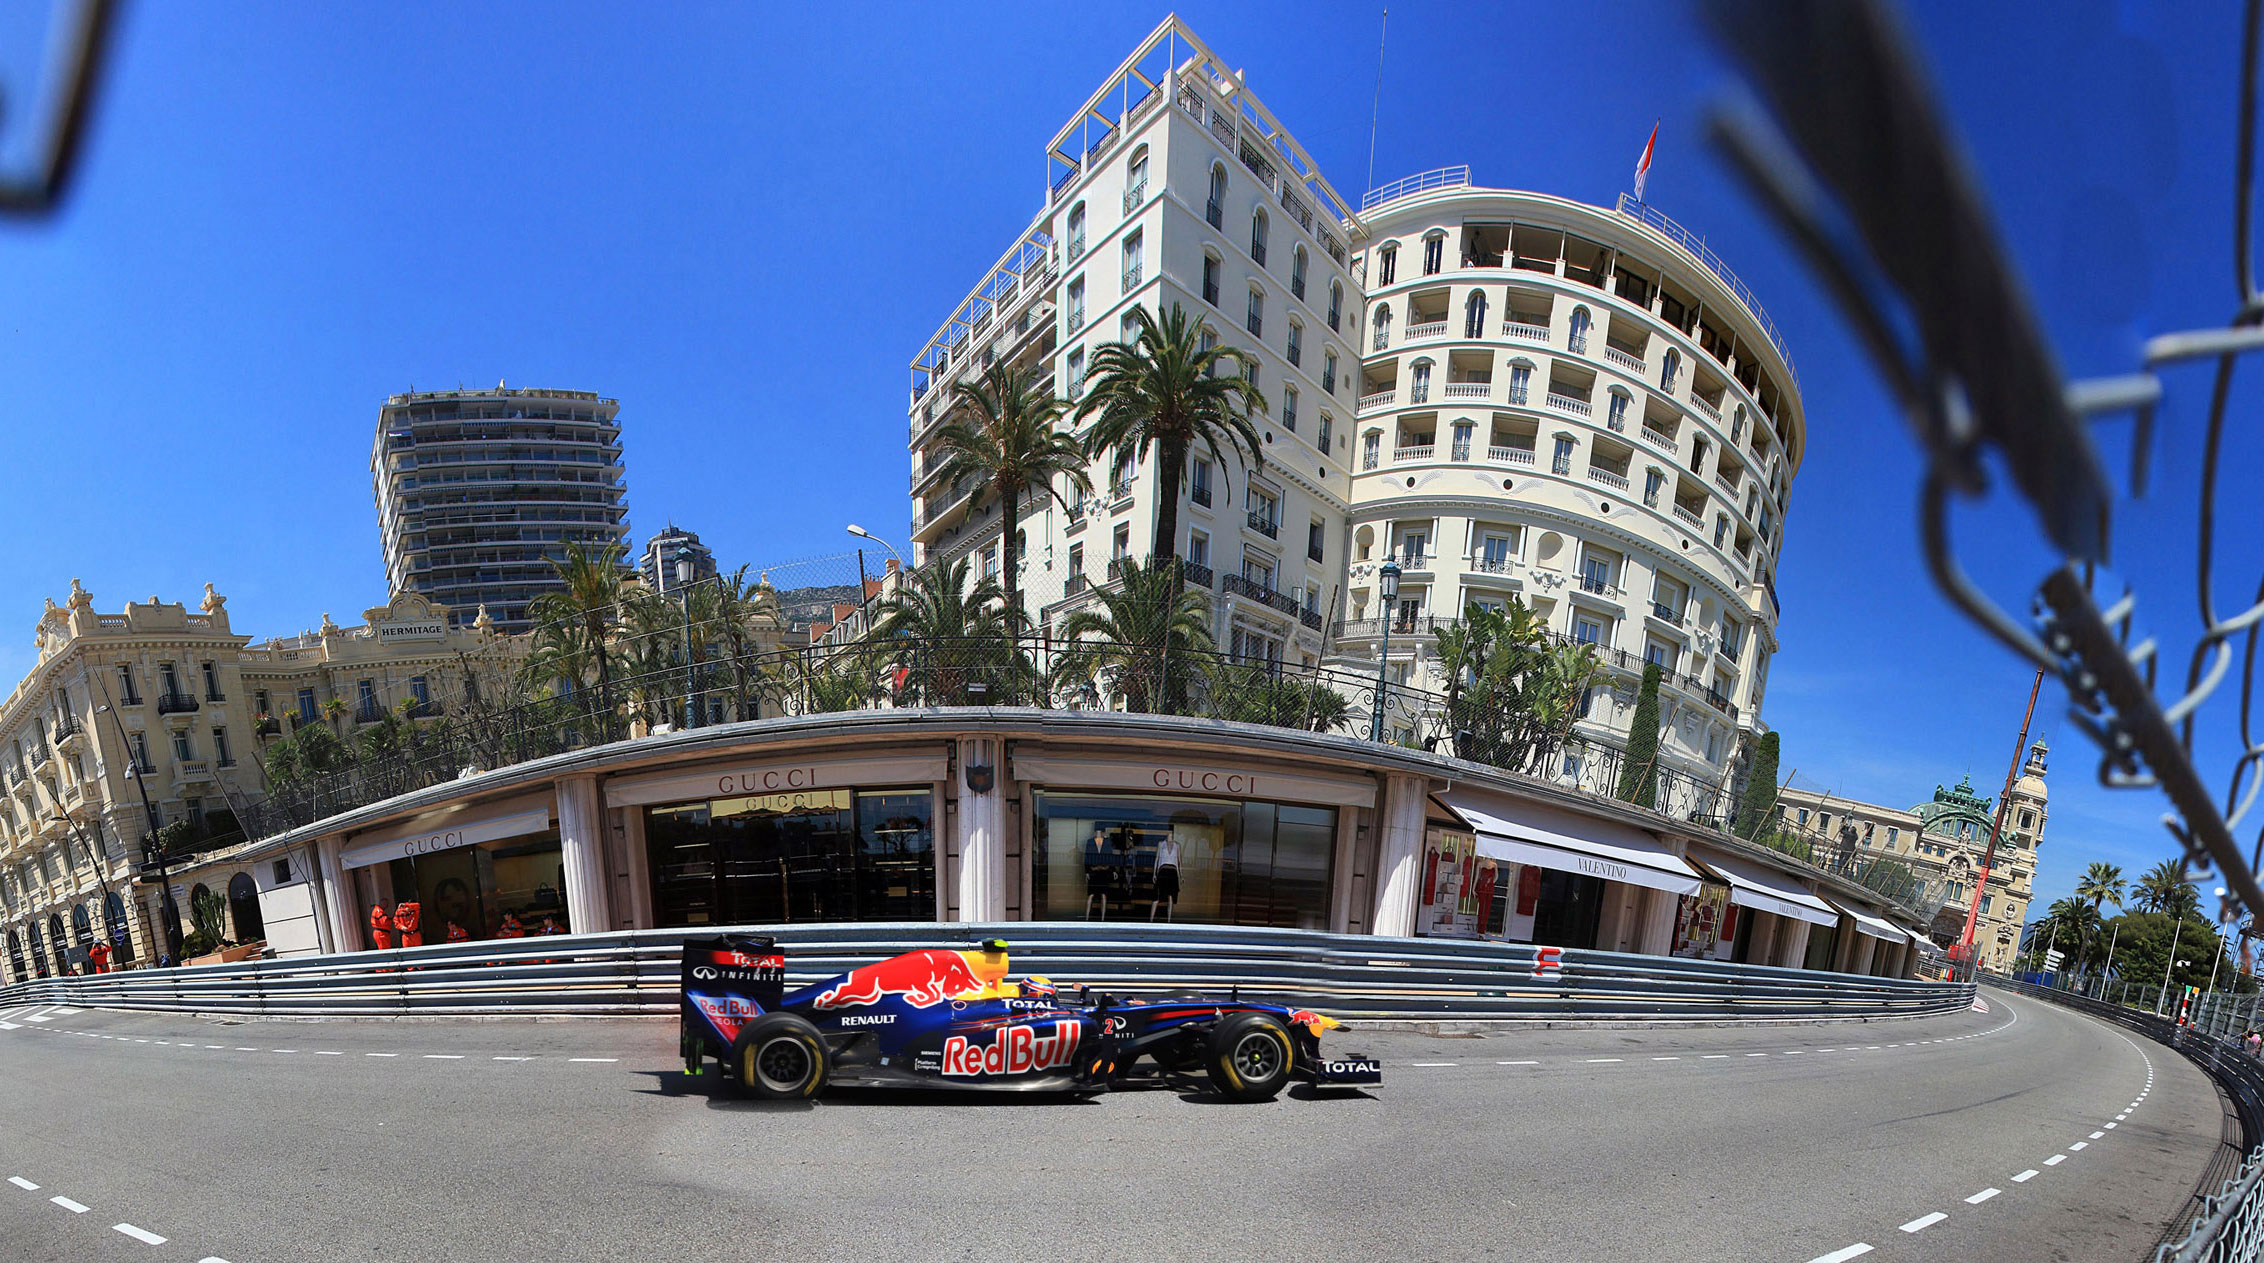 A Formula 1 car racing in an empty street in Monaco